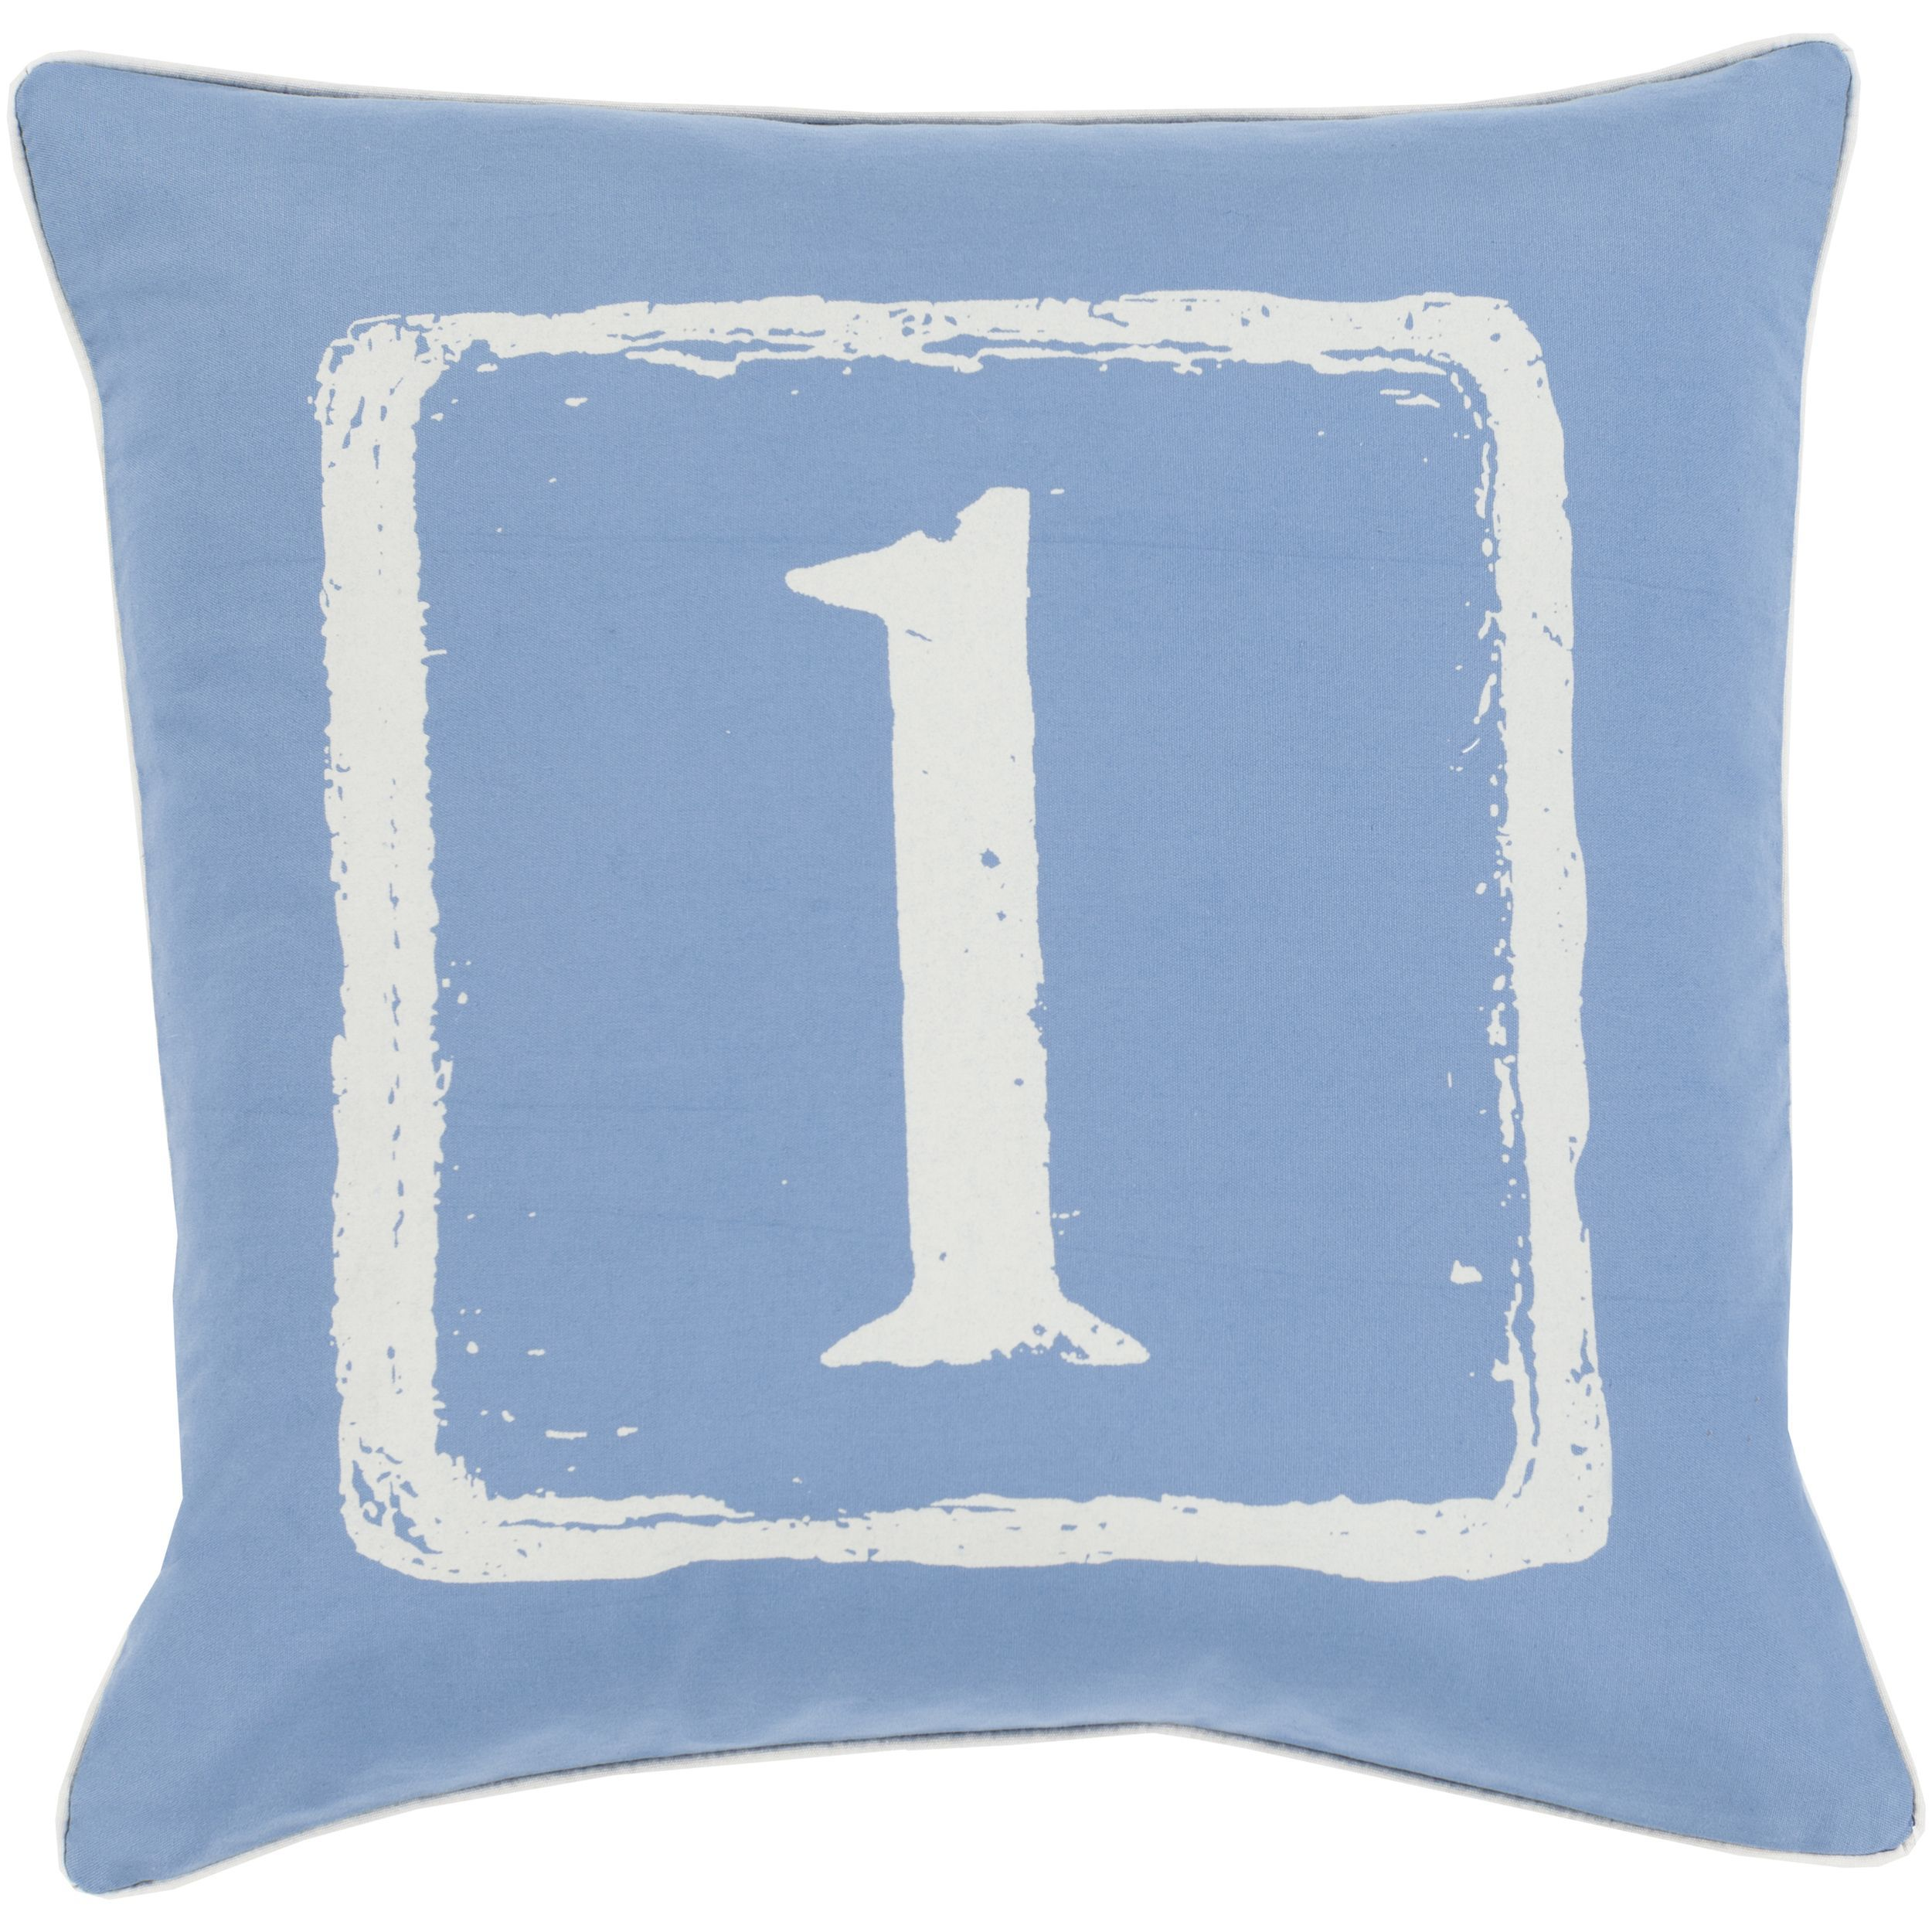 Phyllis Feather and Down Filled or Poly Filled 22-inch Throw Pillow